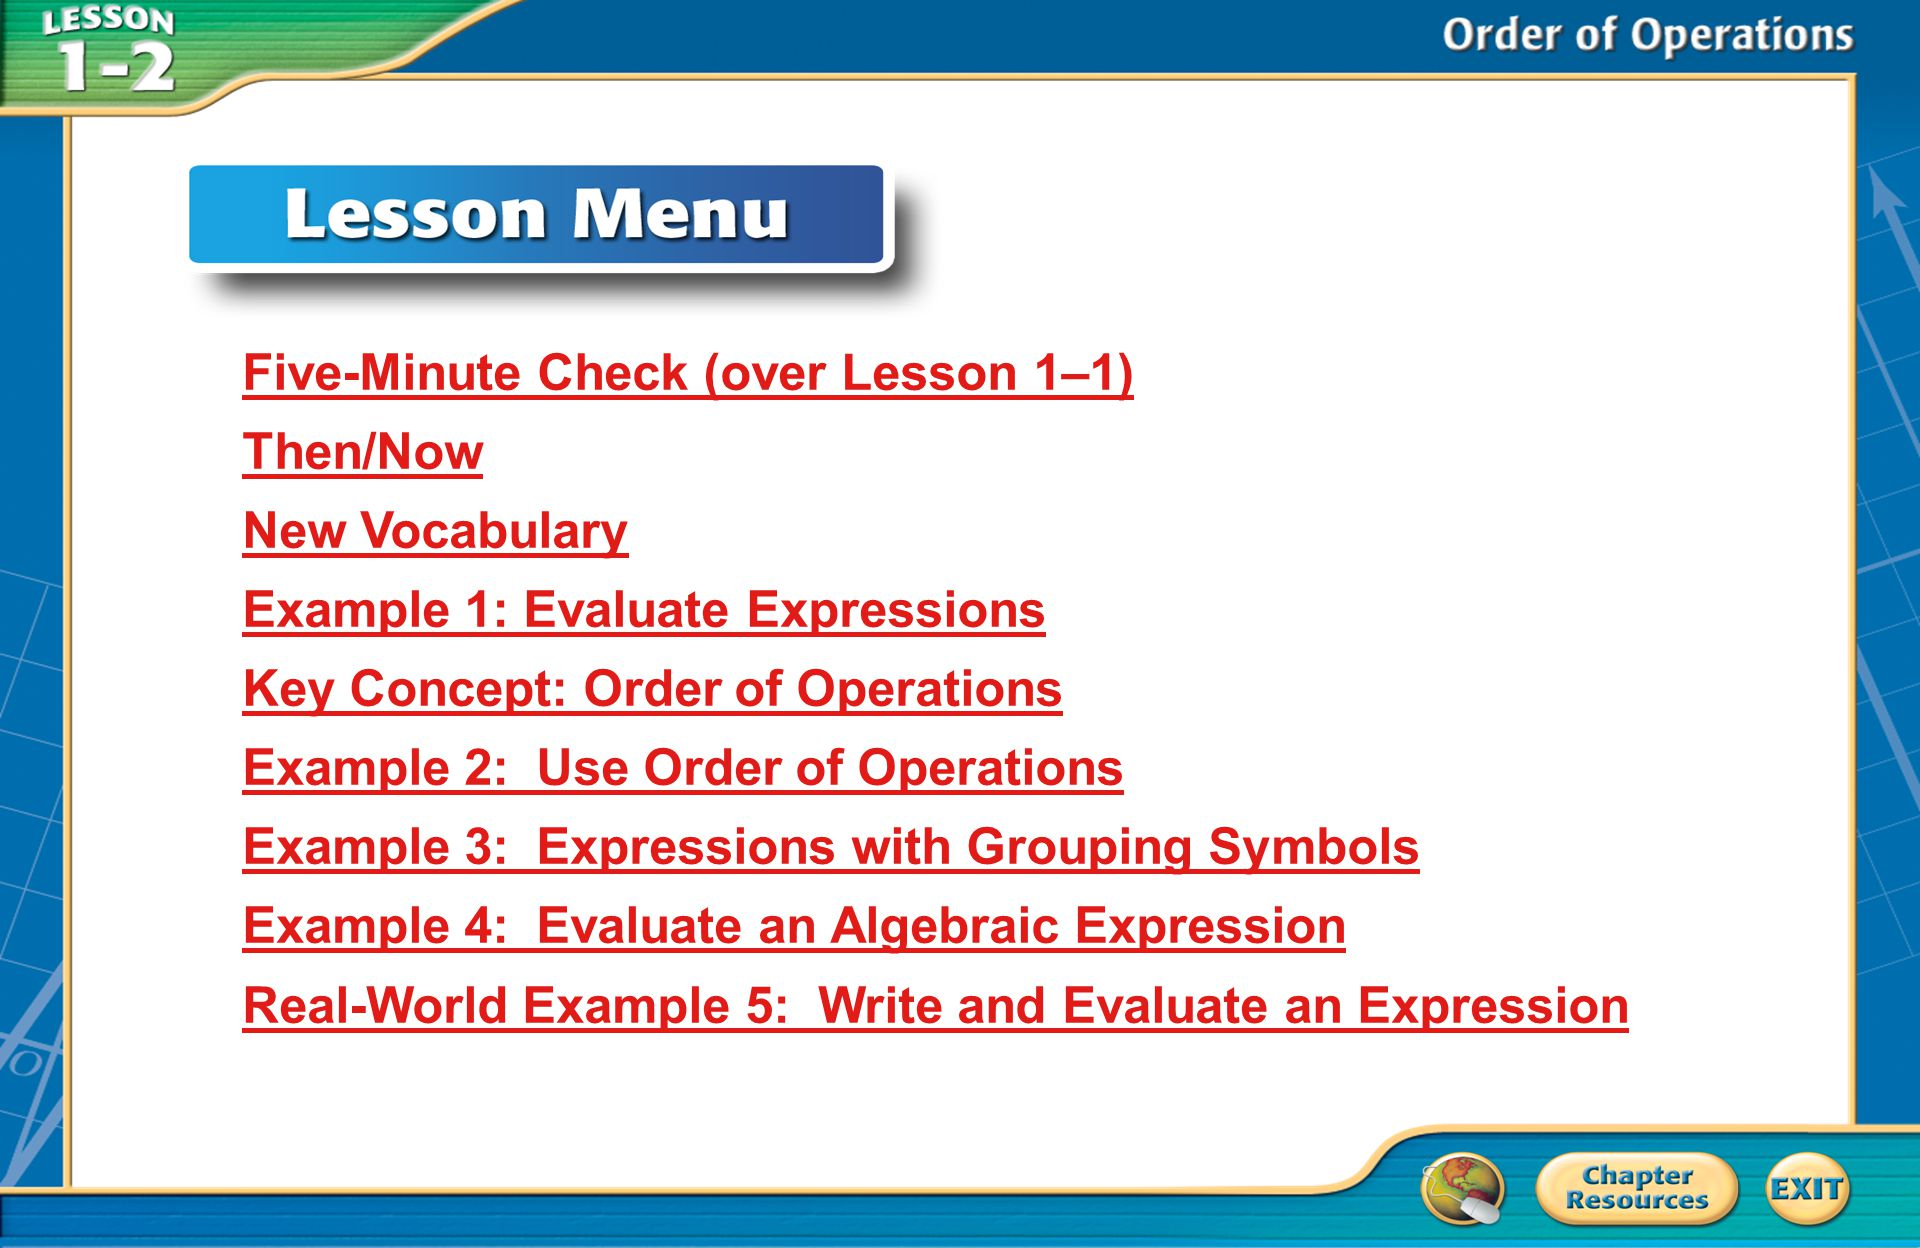 Then/Now You expressed algebraic expressions verbally.